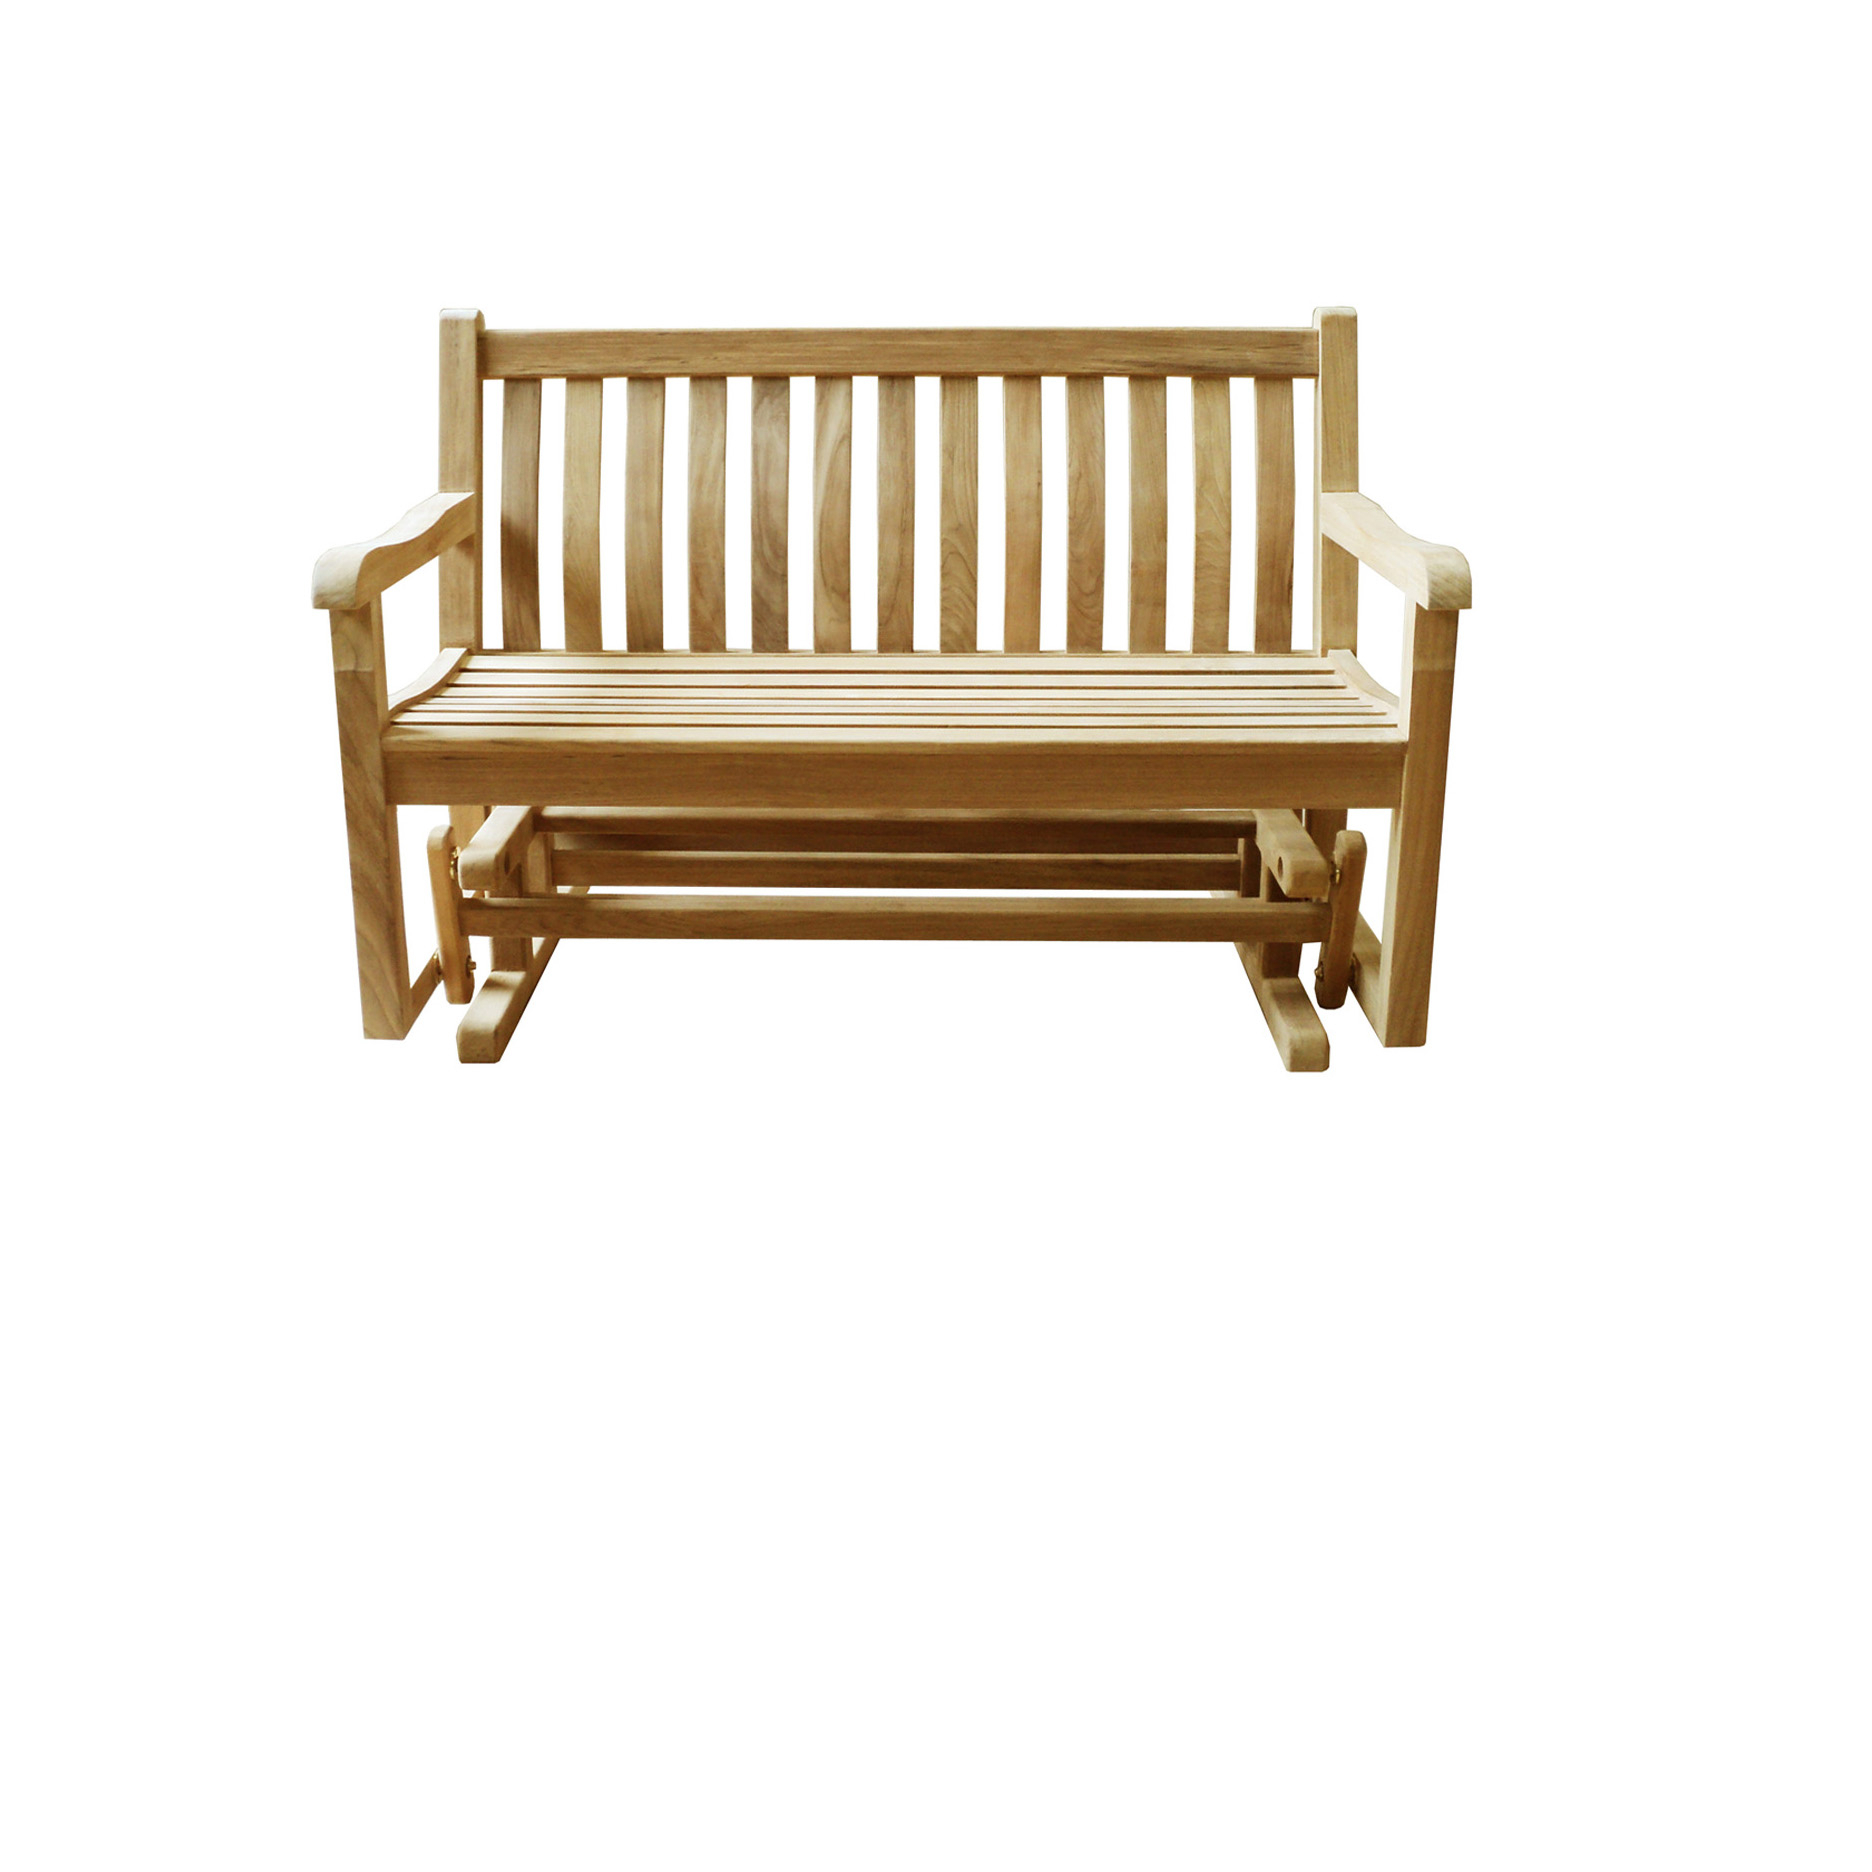 Teak Outdoor Bench Glider Classic | Asia Concept | High With Teak Outdoor Glider Benches (View 24 of 25)